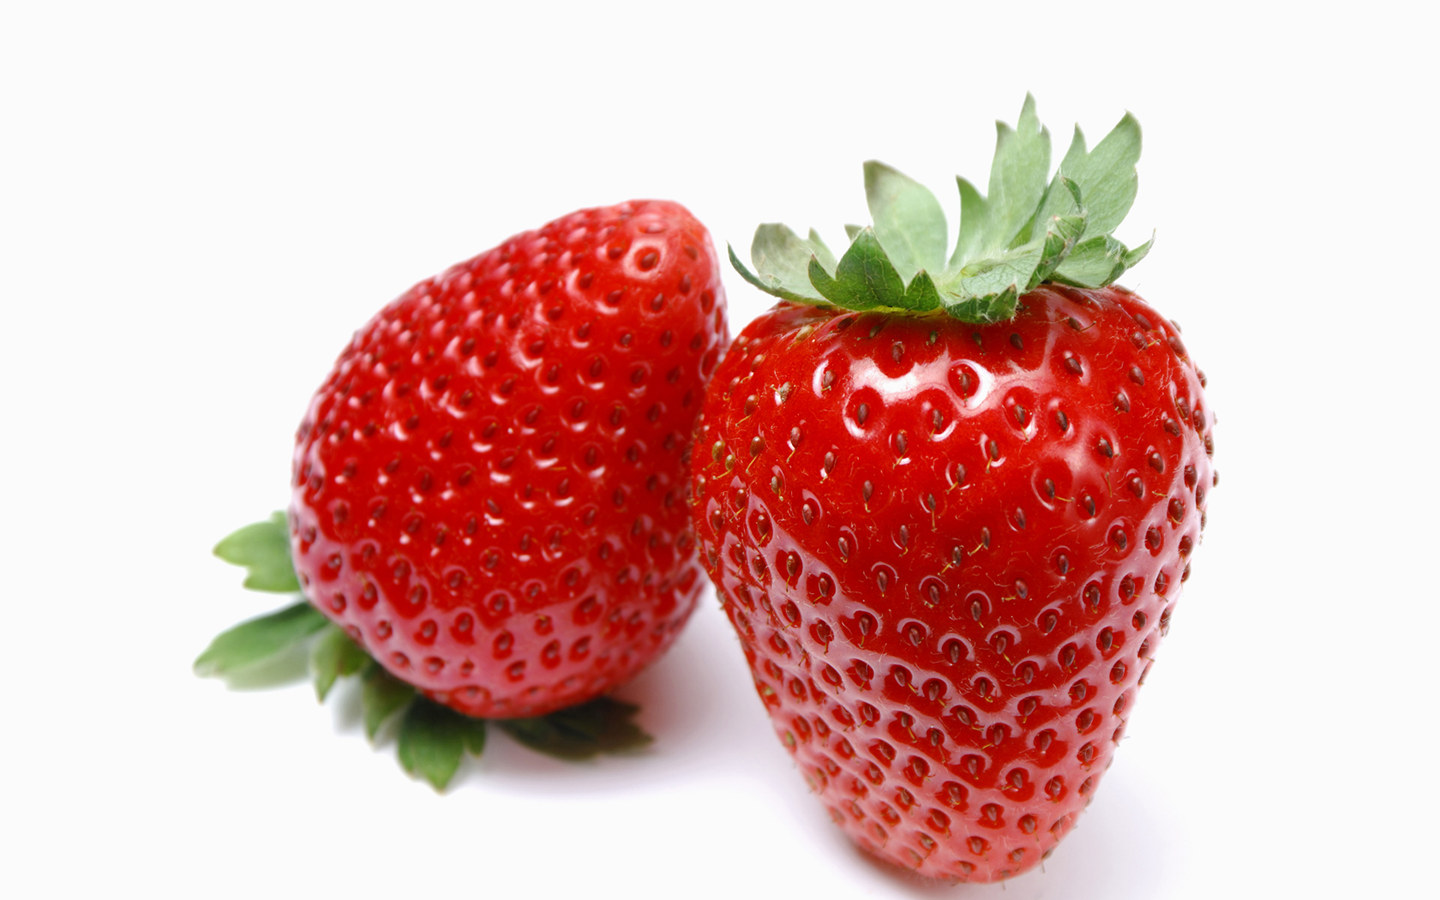 Strawberry - Fruits And Vegetables